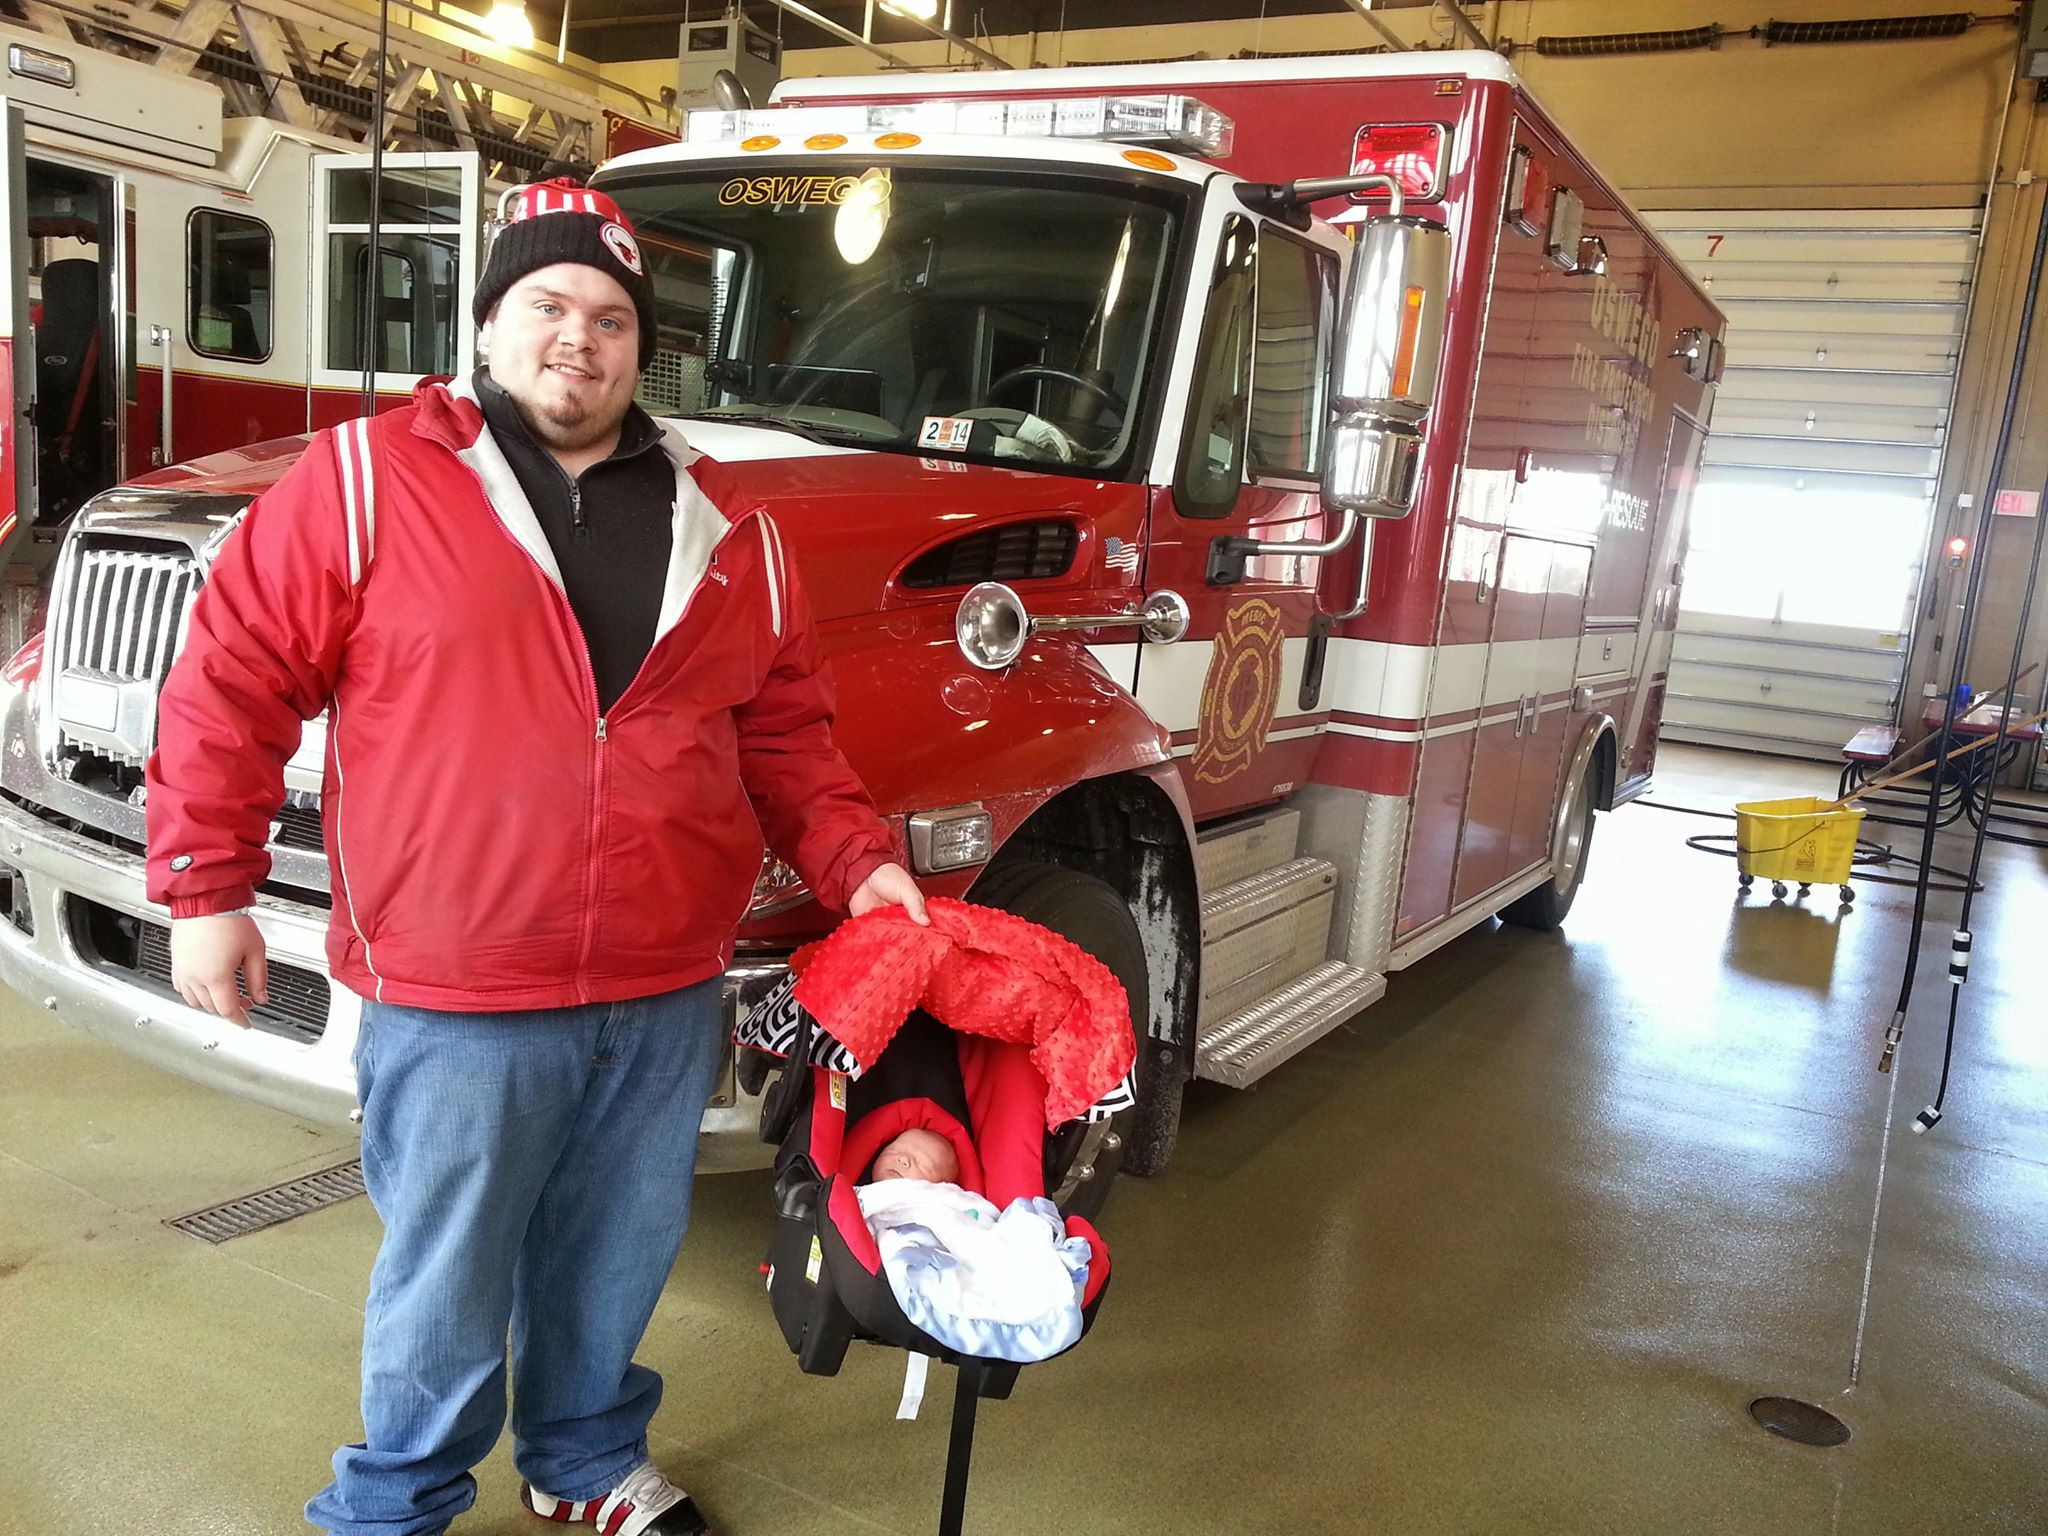 Proud Dad, Jeff, holds newborn son, Braylan, in front of the ambulance where he was delivered